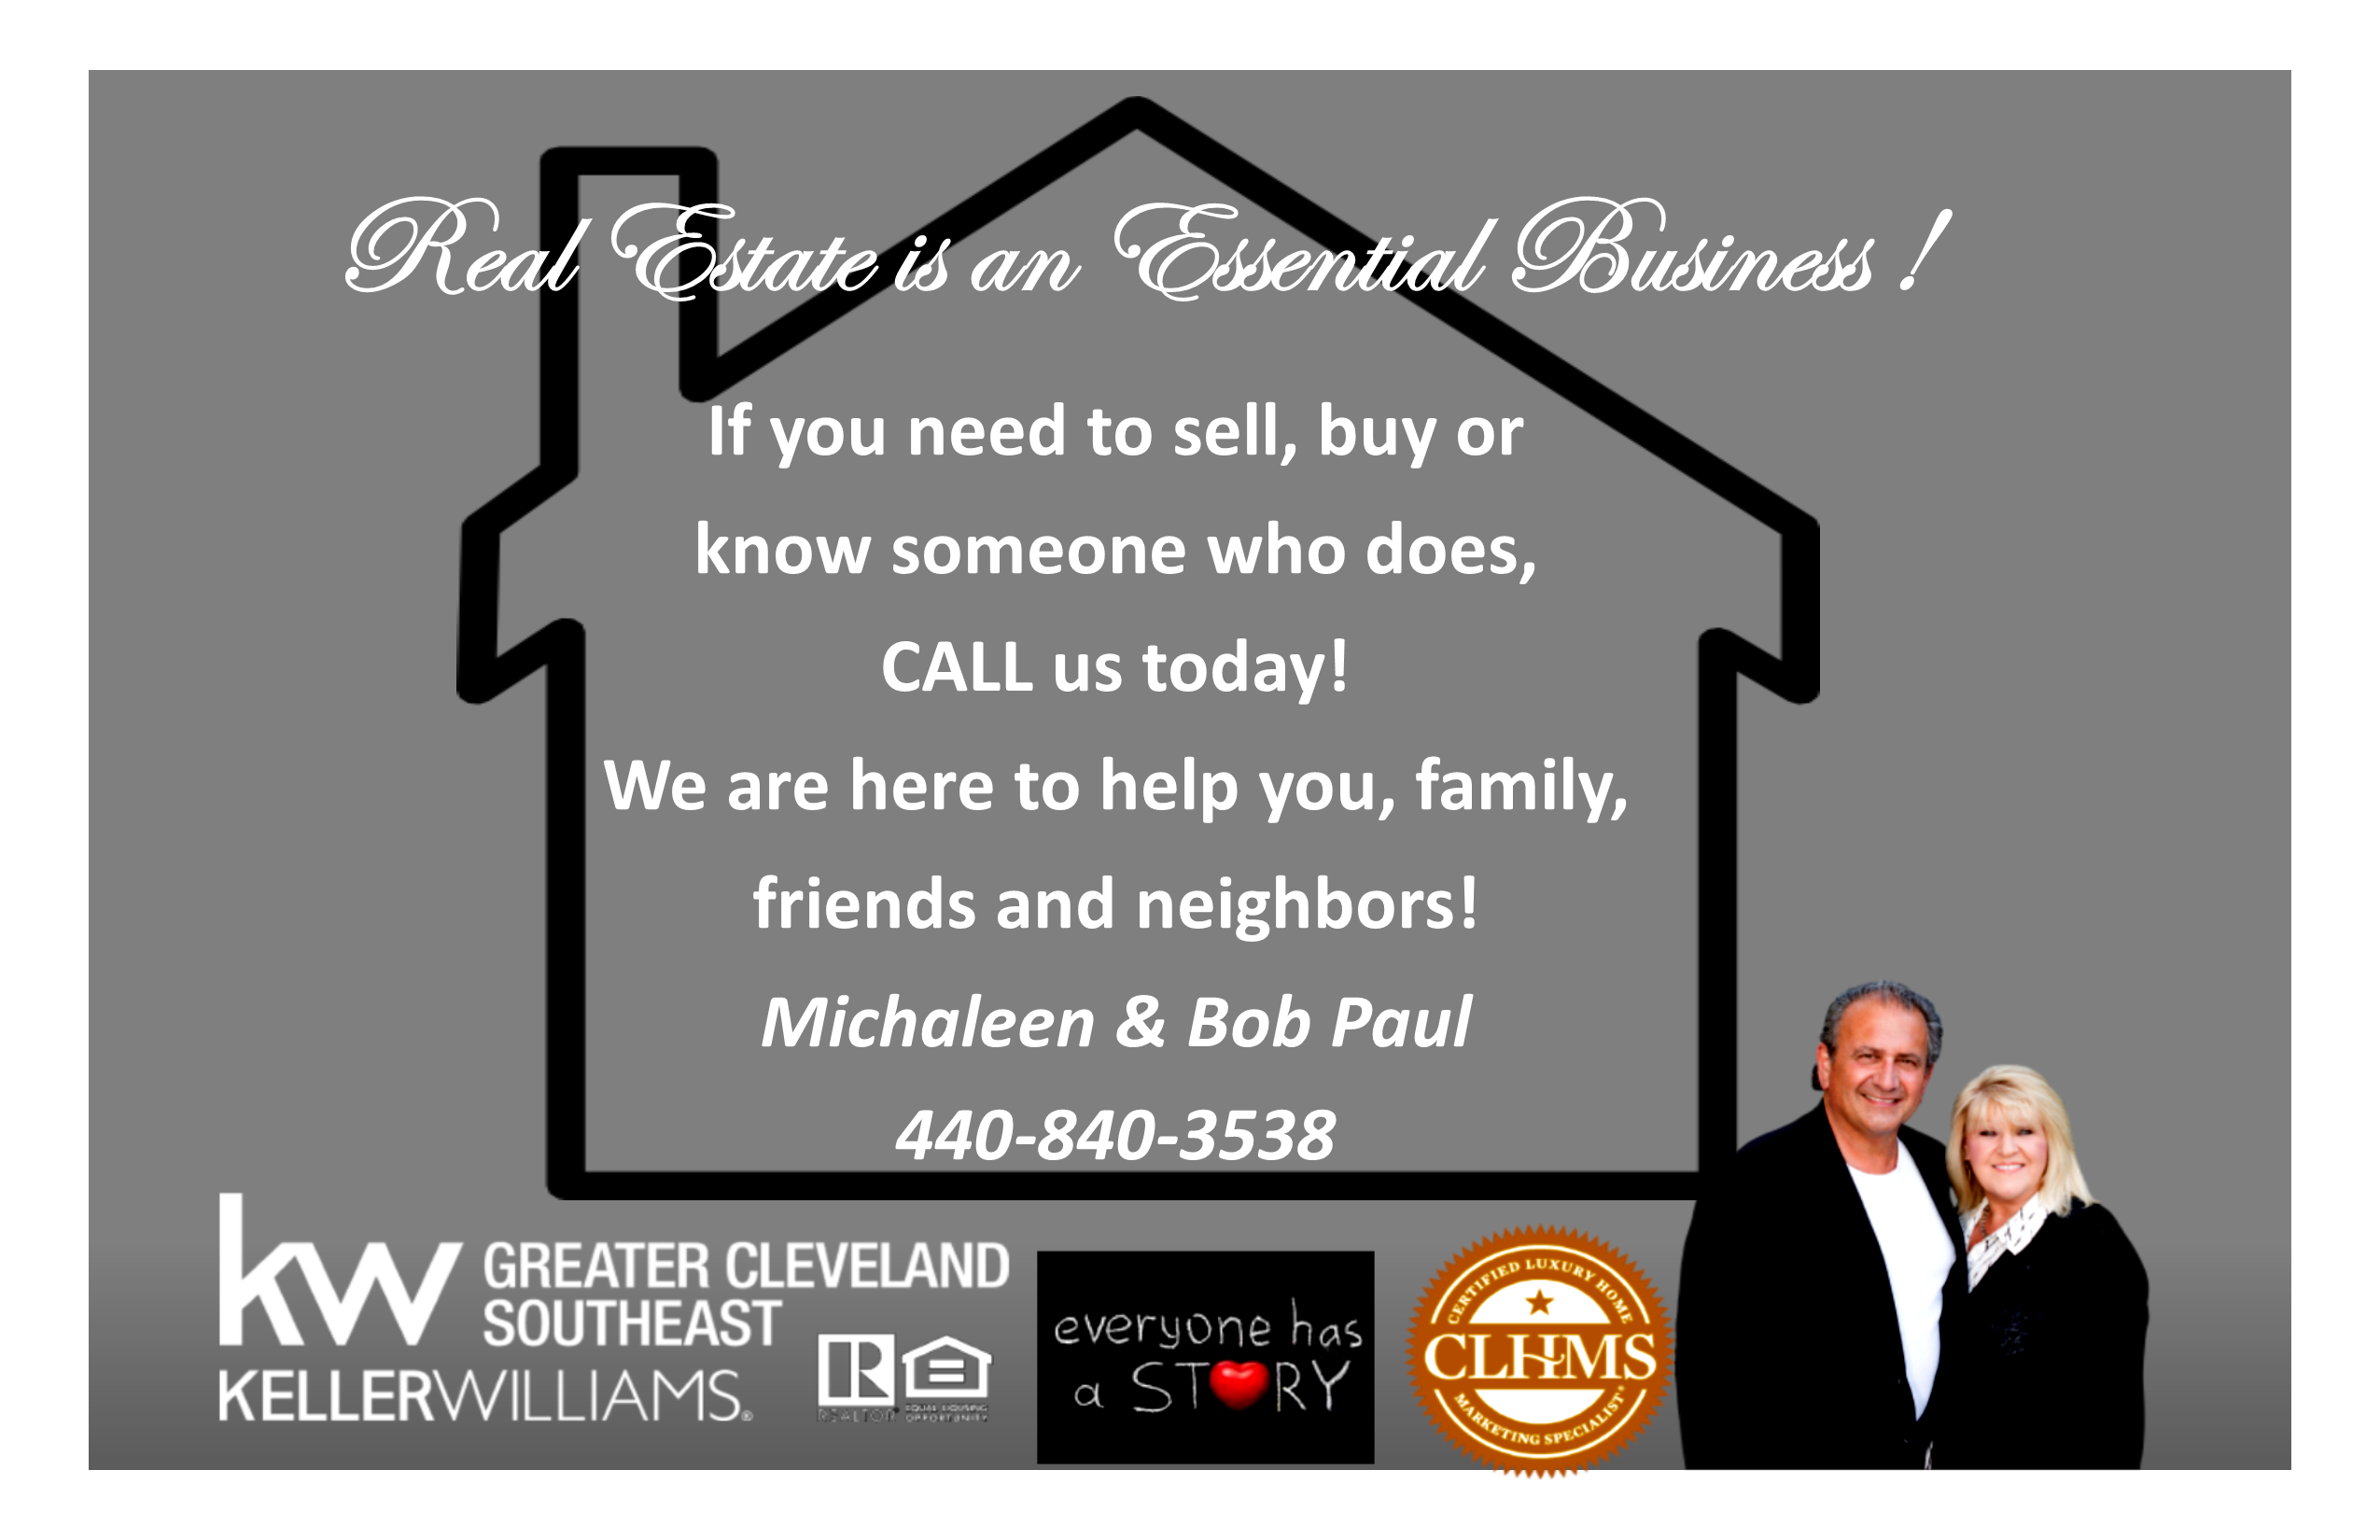 Real Estate is an Essential Business!